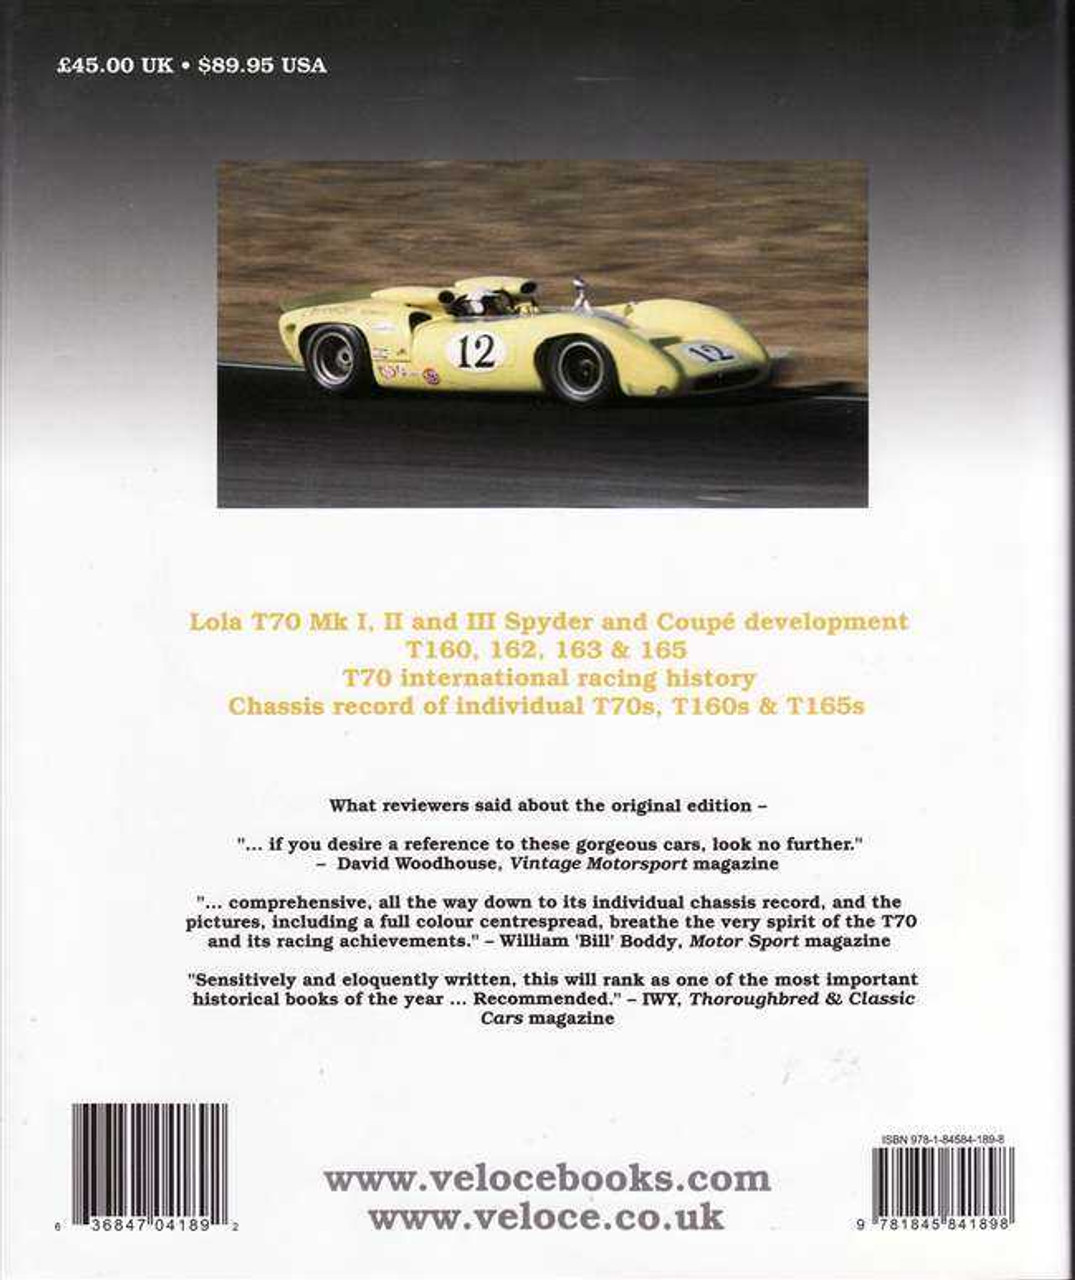 Lola T70: Revised 4th Edition